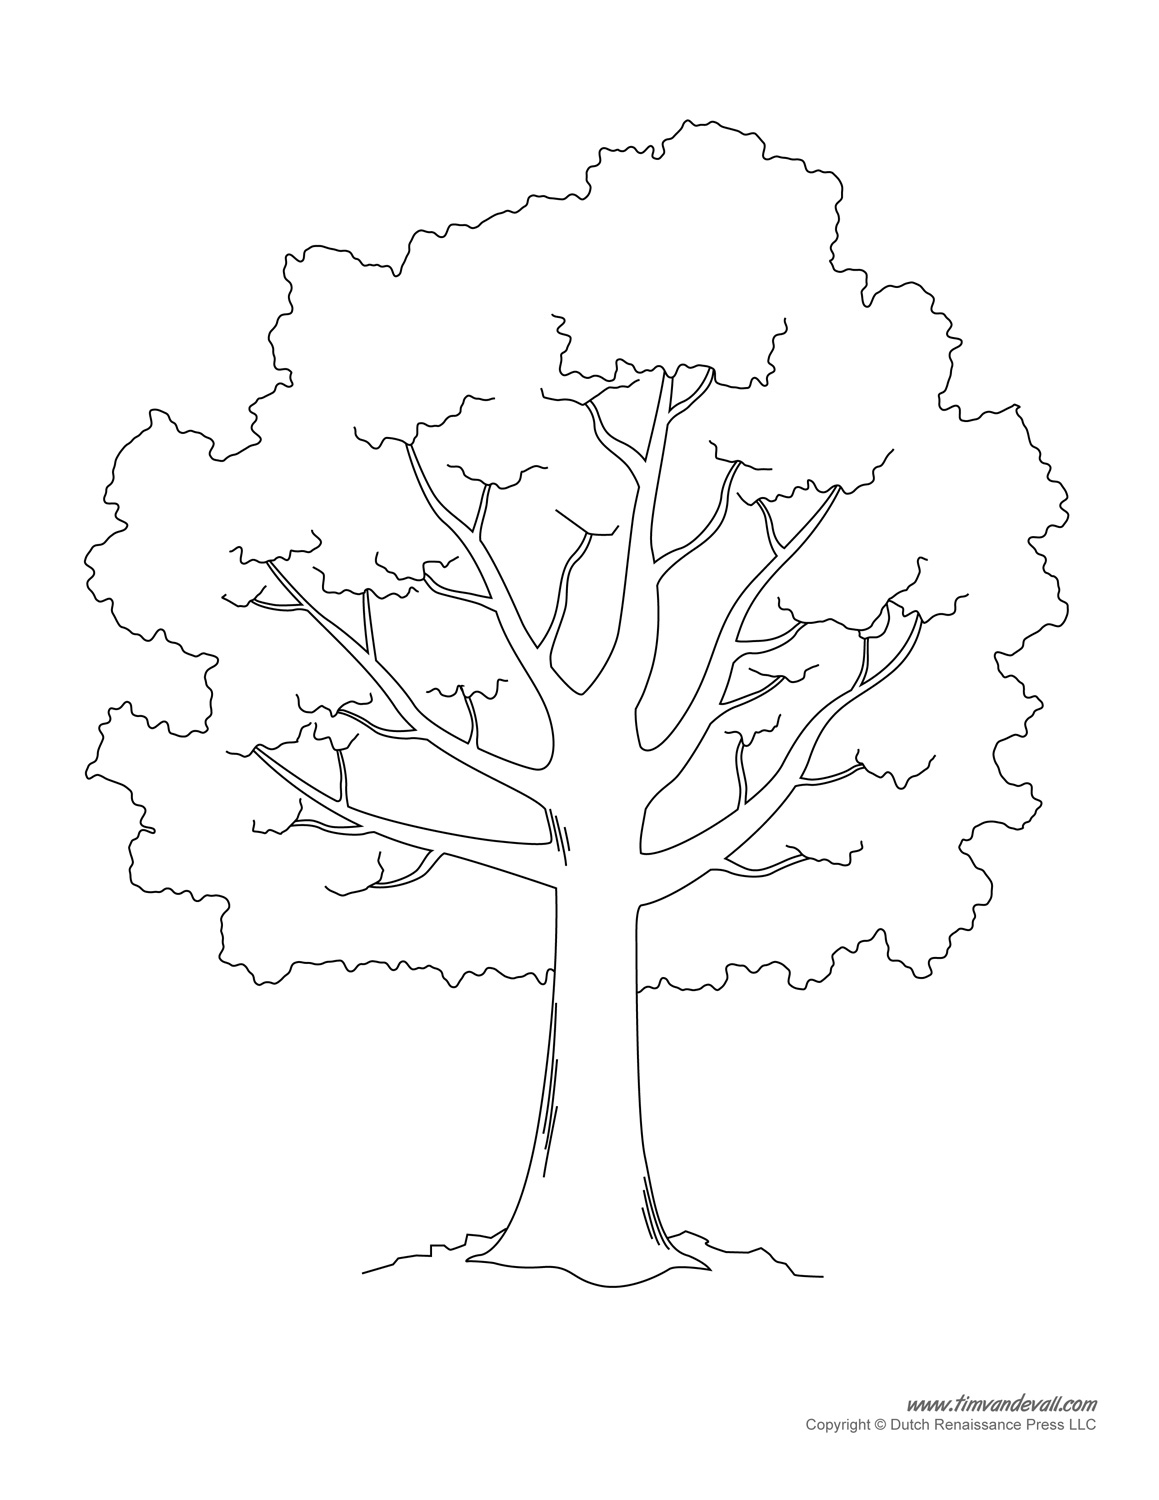 Free Stencil Of A Tree Outline, Download Free Clip Art, Free Clip - Free Printable Tree Template